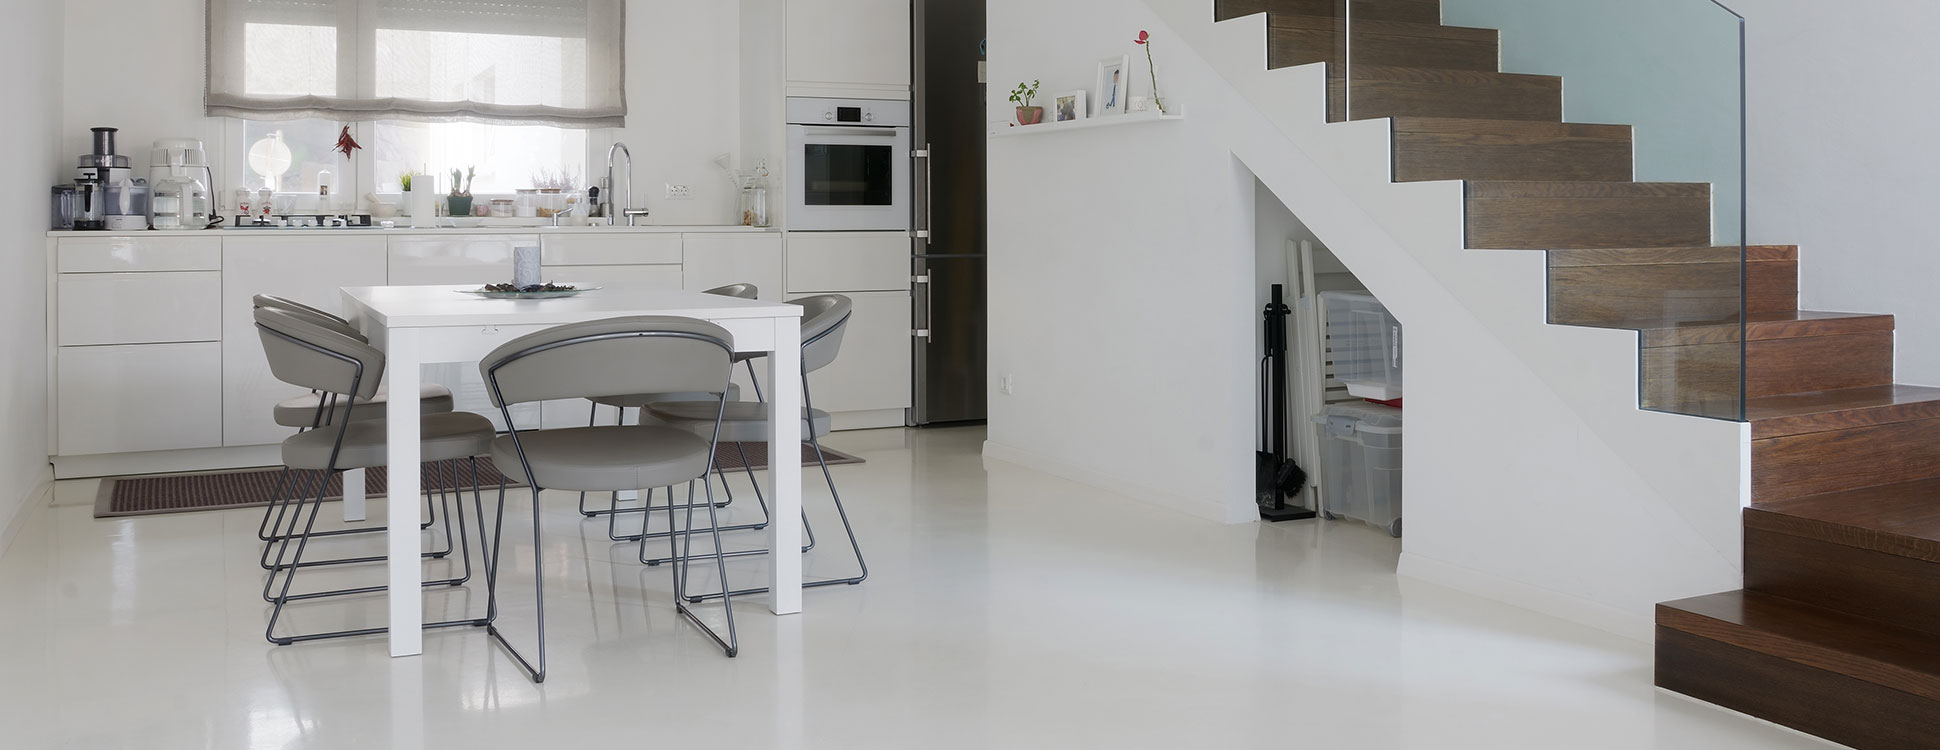 professional painting and epoxy flooring services